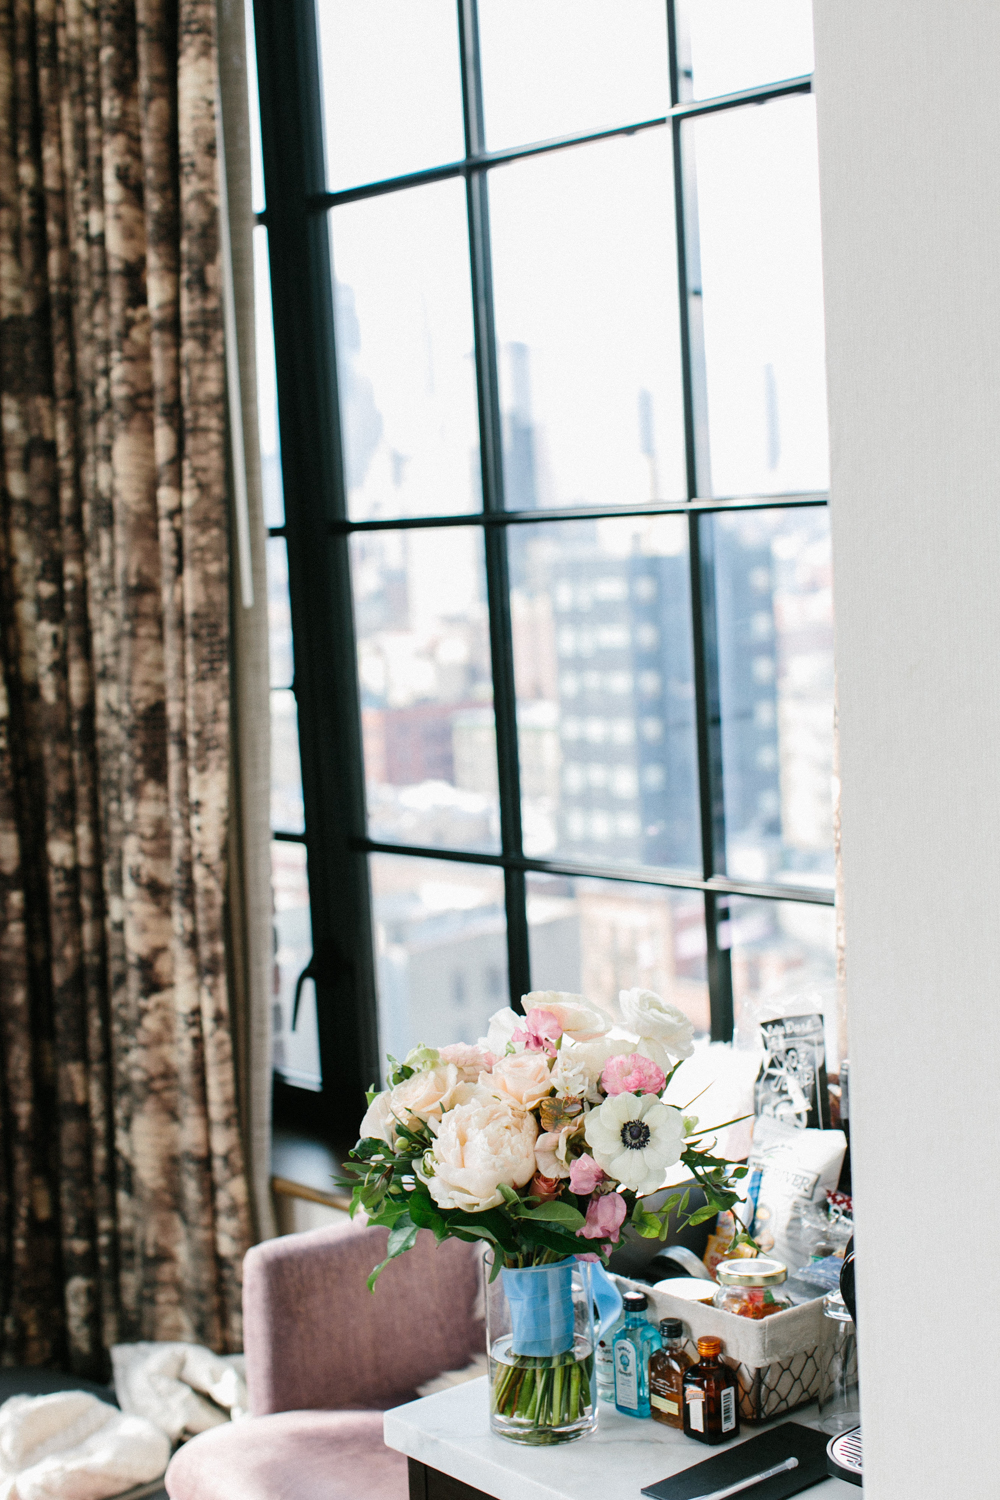 Bride's bouquet with NYC skyline in the background